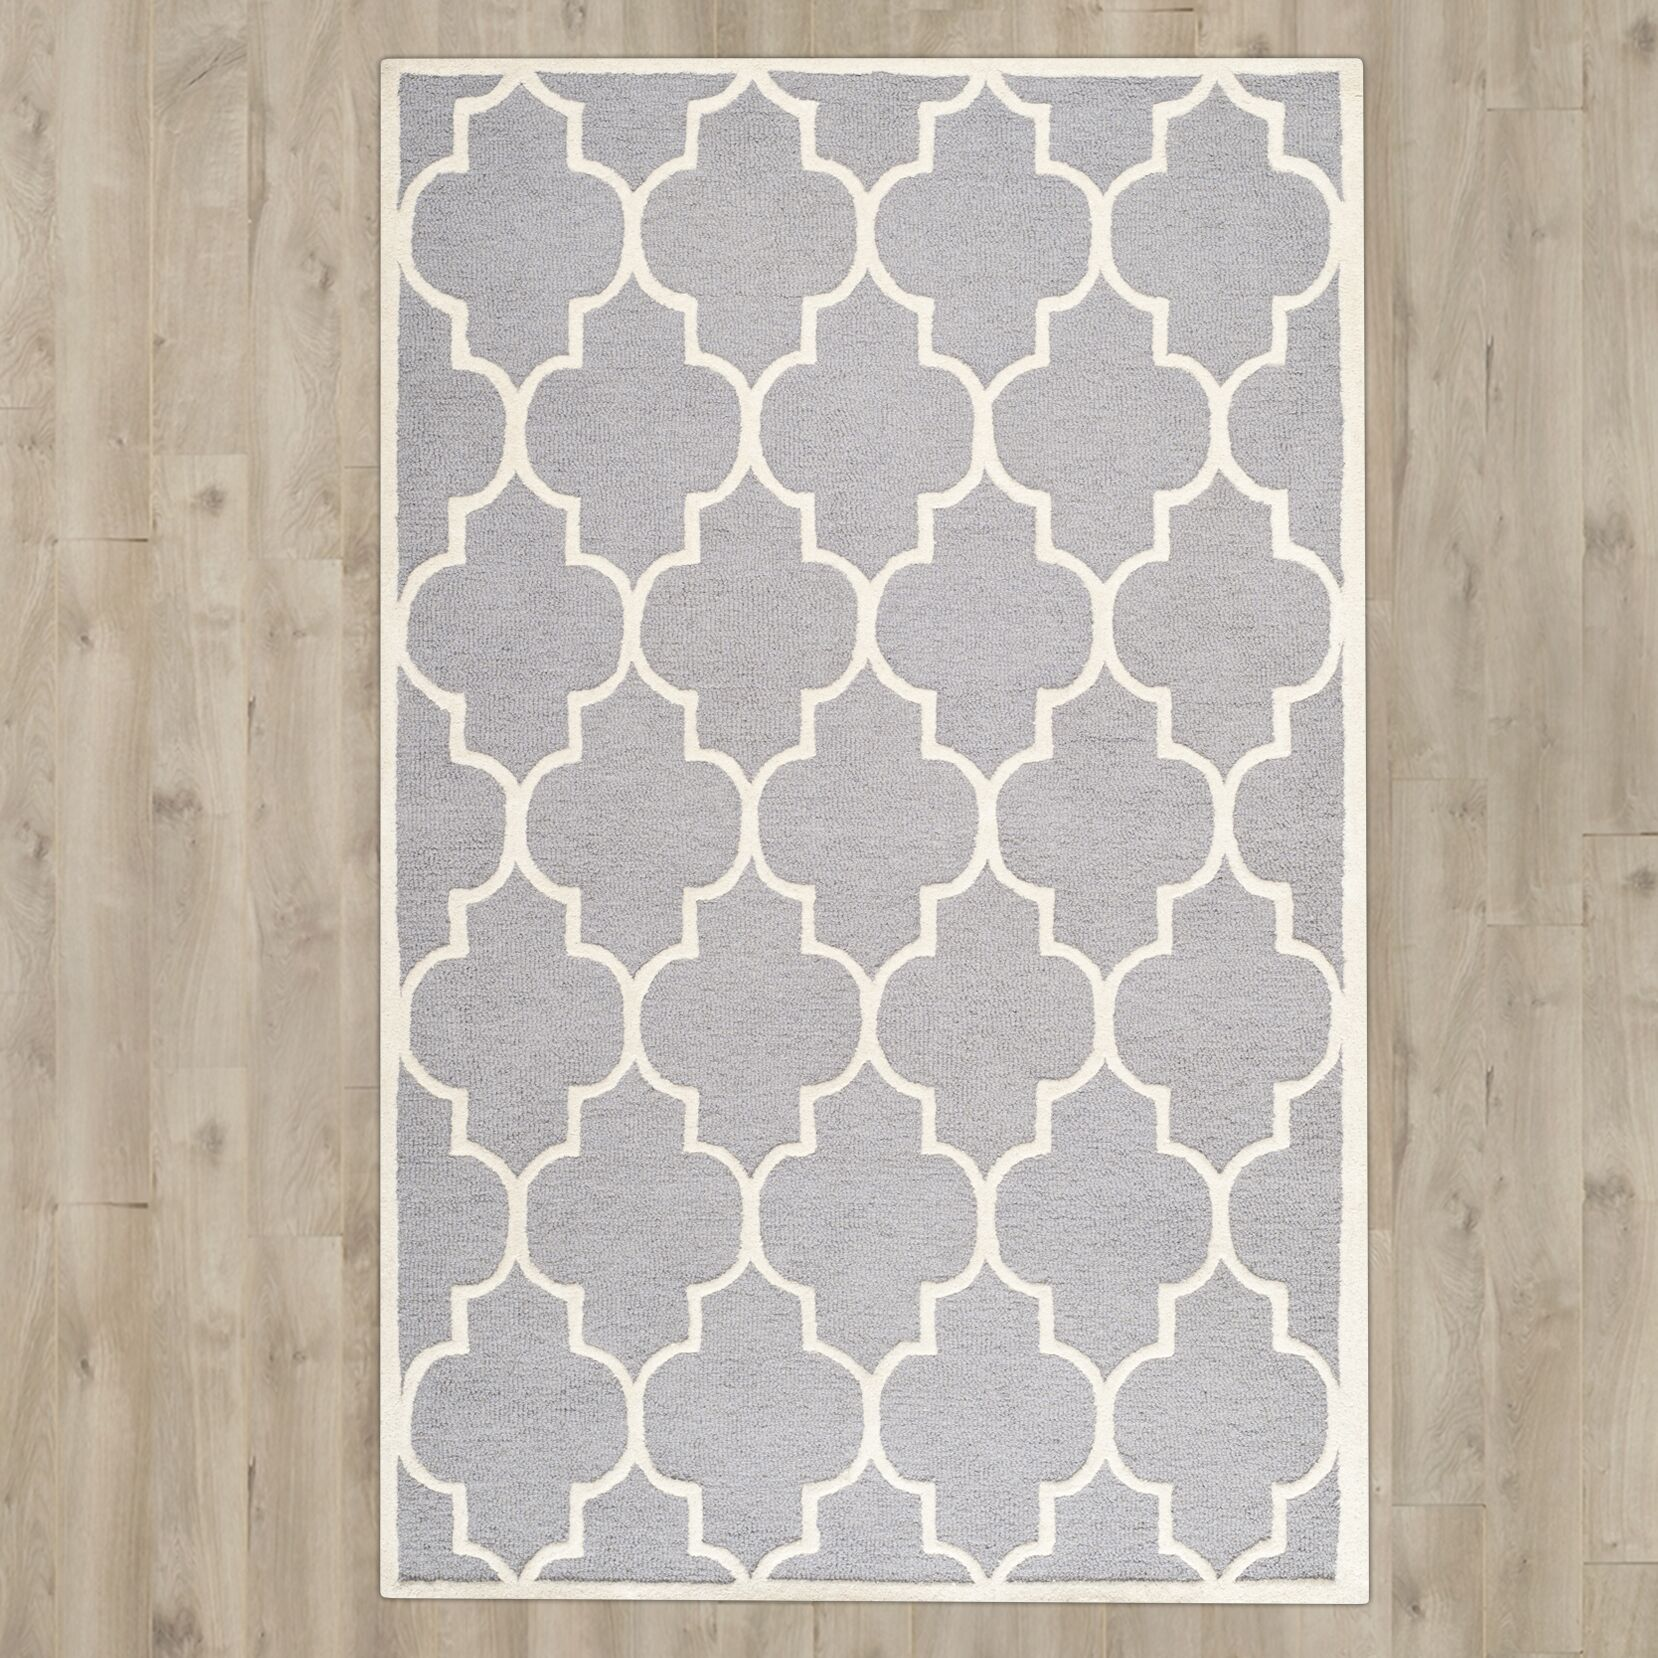 Martins Hand-Tufted Wool Gray/Ivory Area Rug Rug Size: 5' x 7'